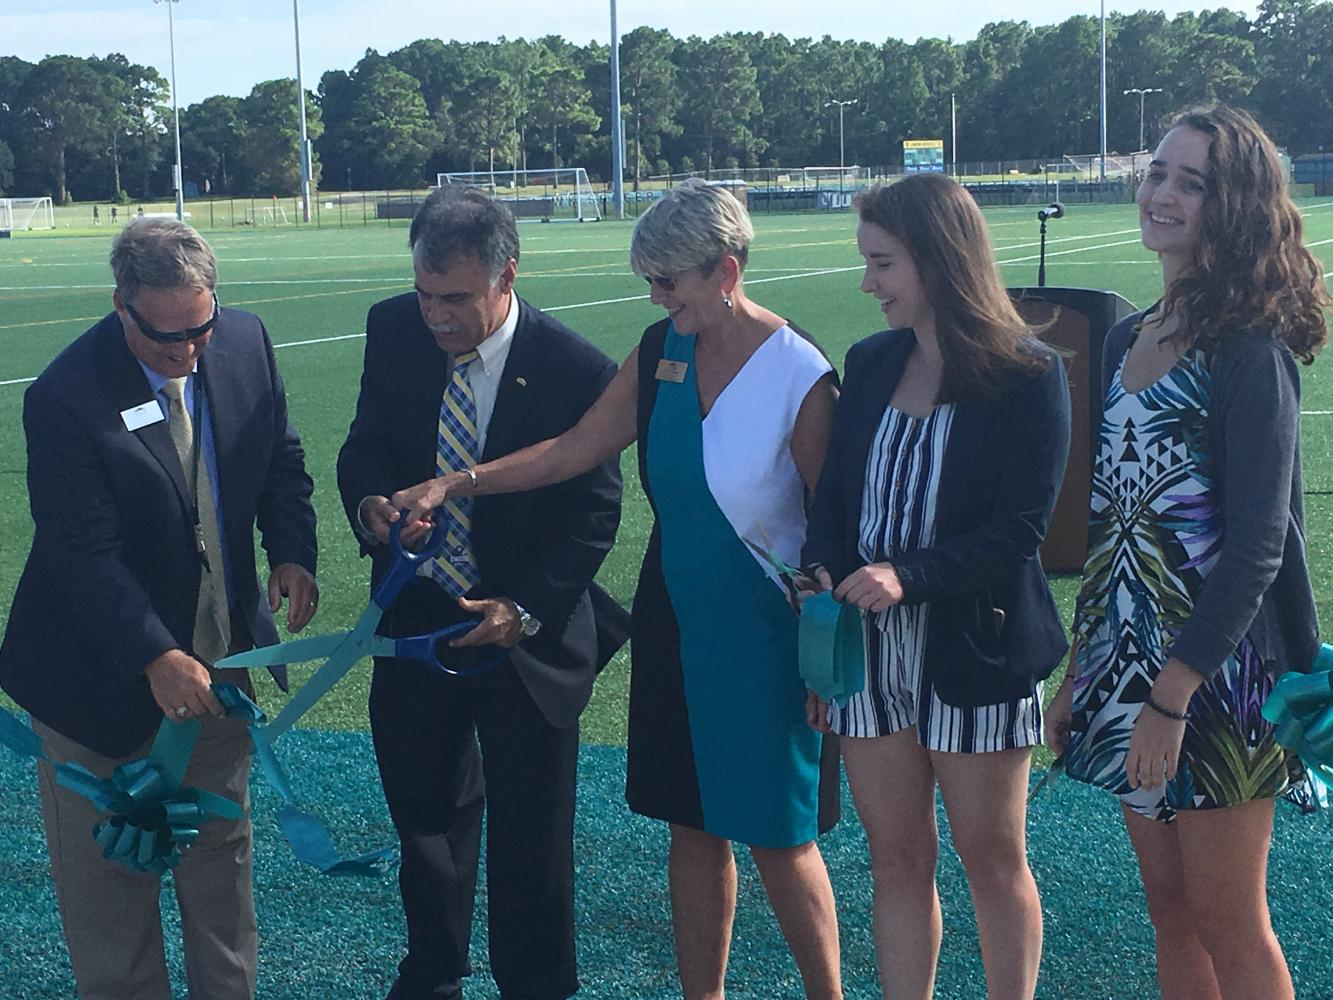 UNCW Chancellor Jose V. Sartartelli, center-left, cuts the ribbon during the grand-opening ceremony for the university's recreational fields.